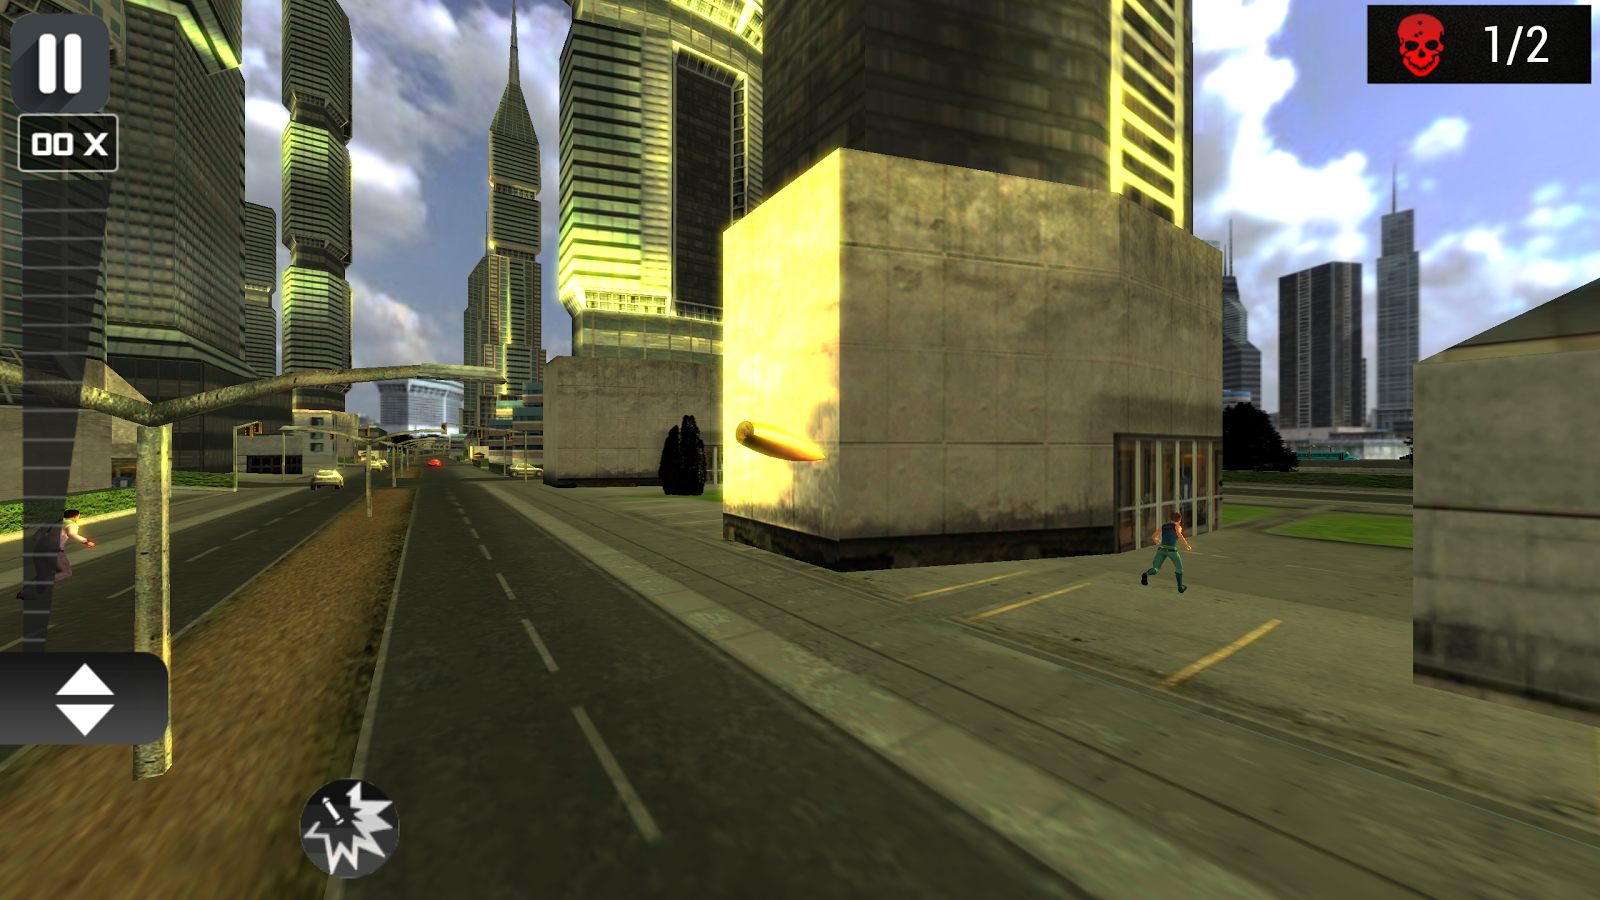 Sniper Terrorist Strike Screenshot 14